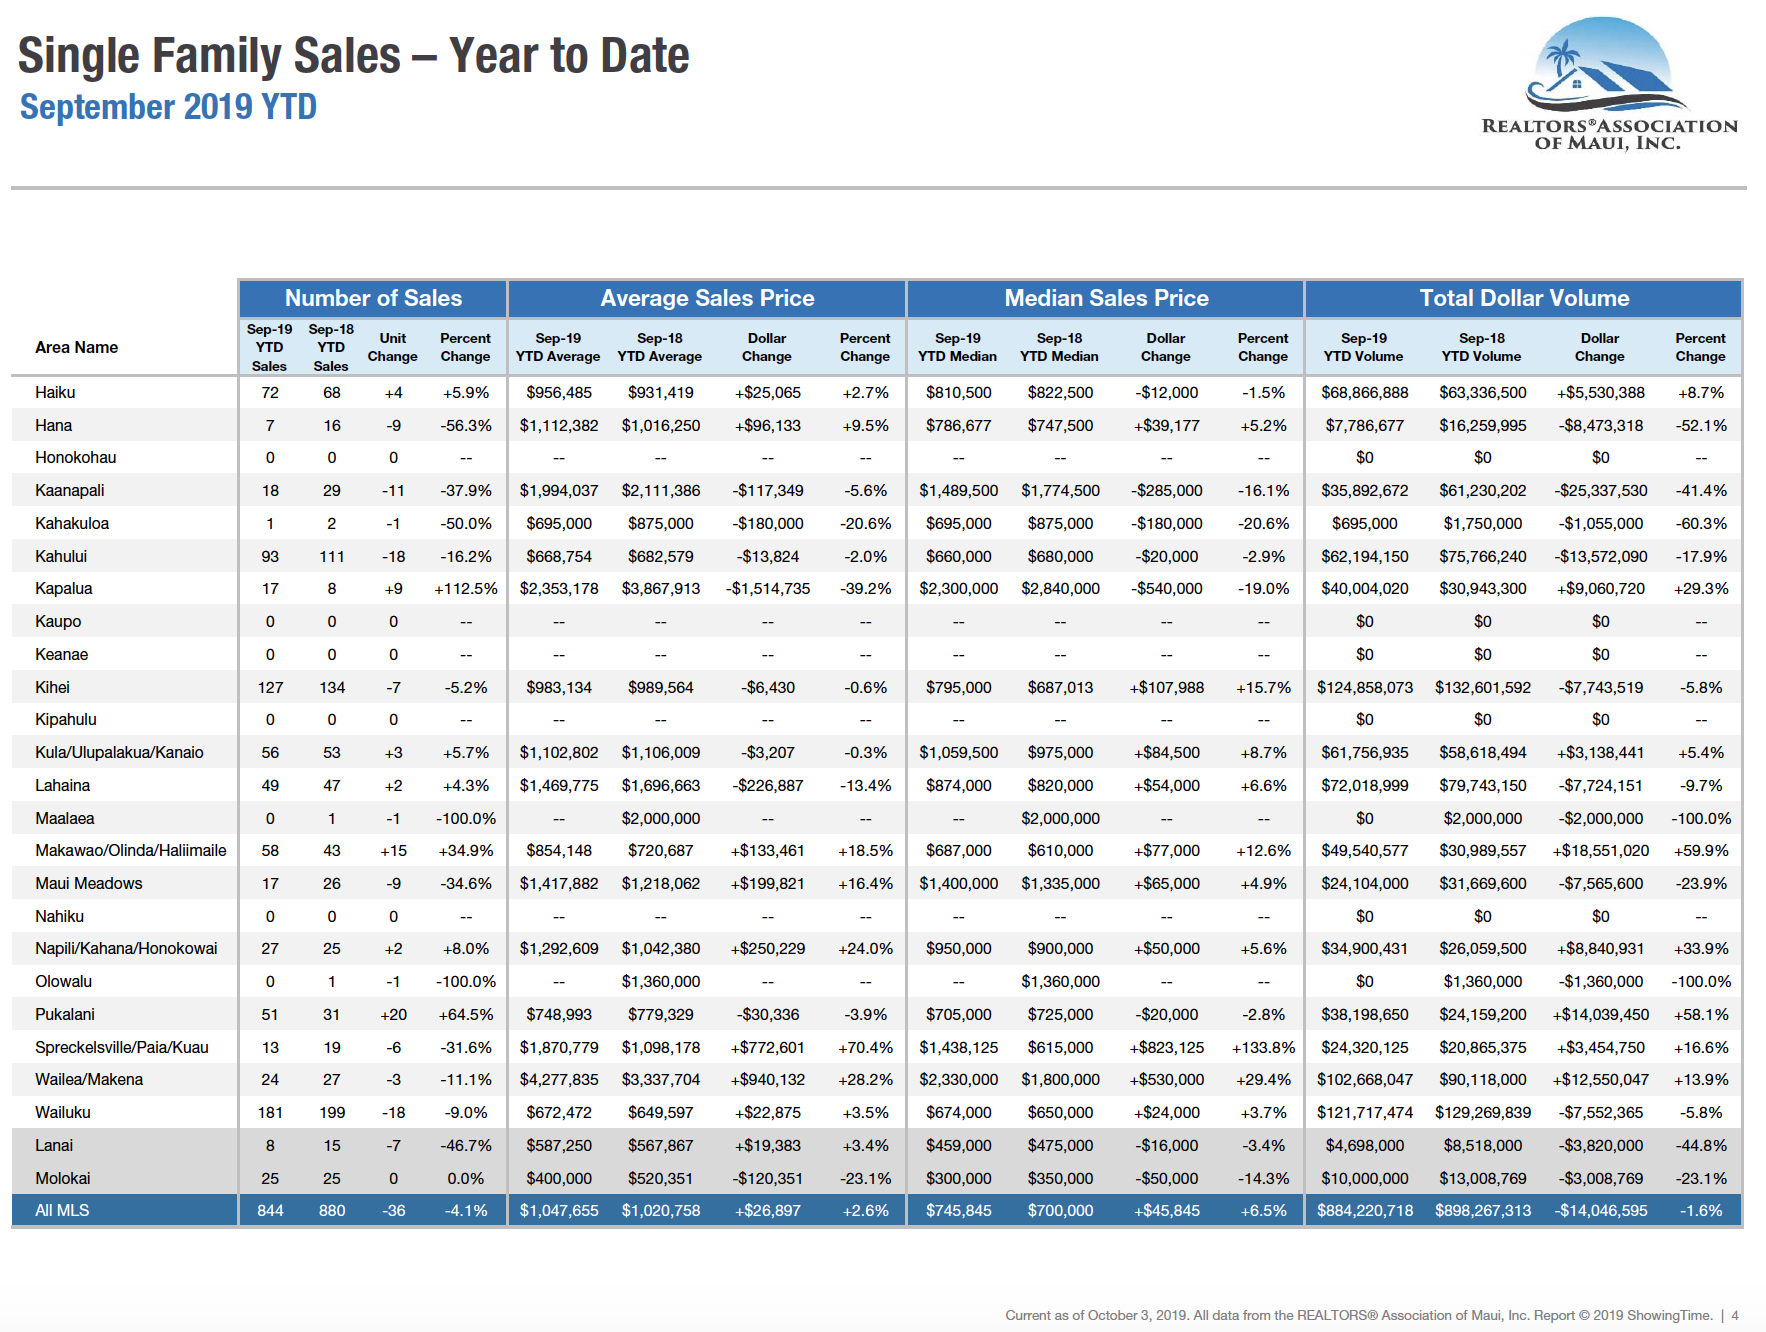 Maui single family home sales year to date through September 2019.